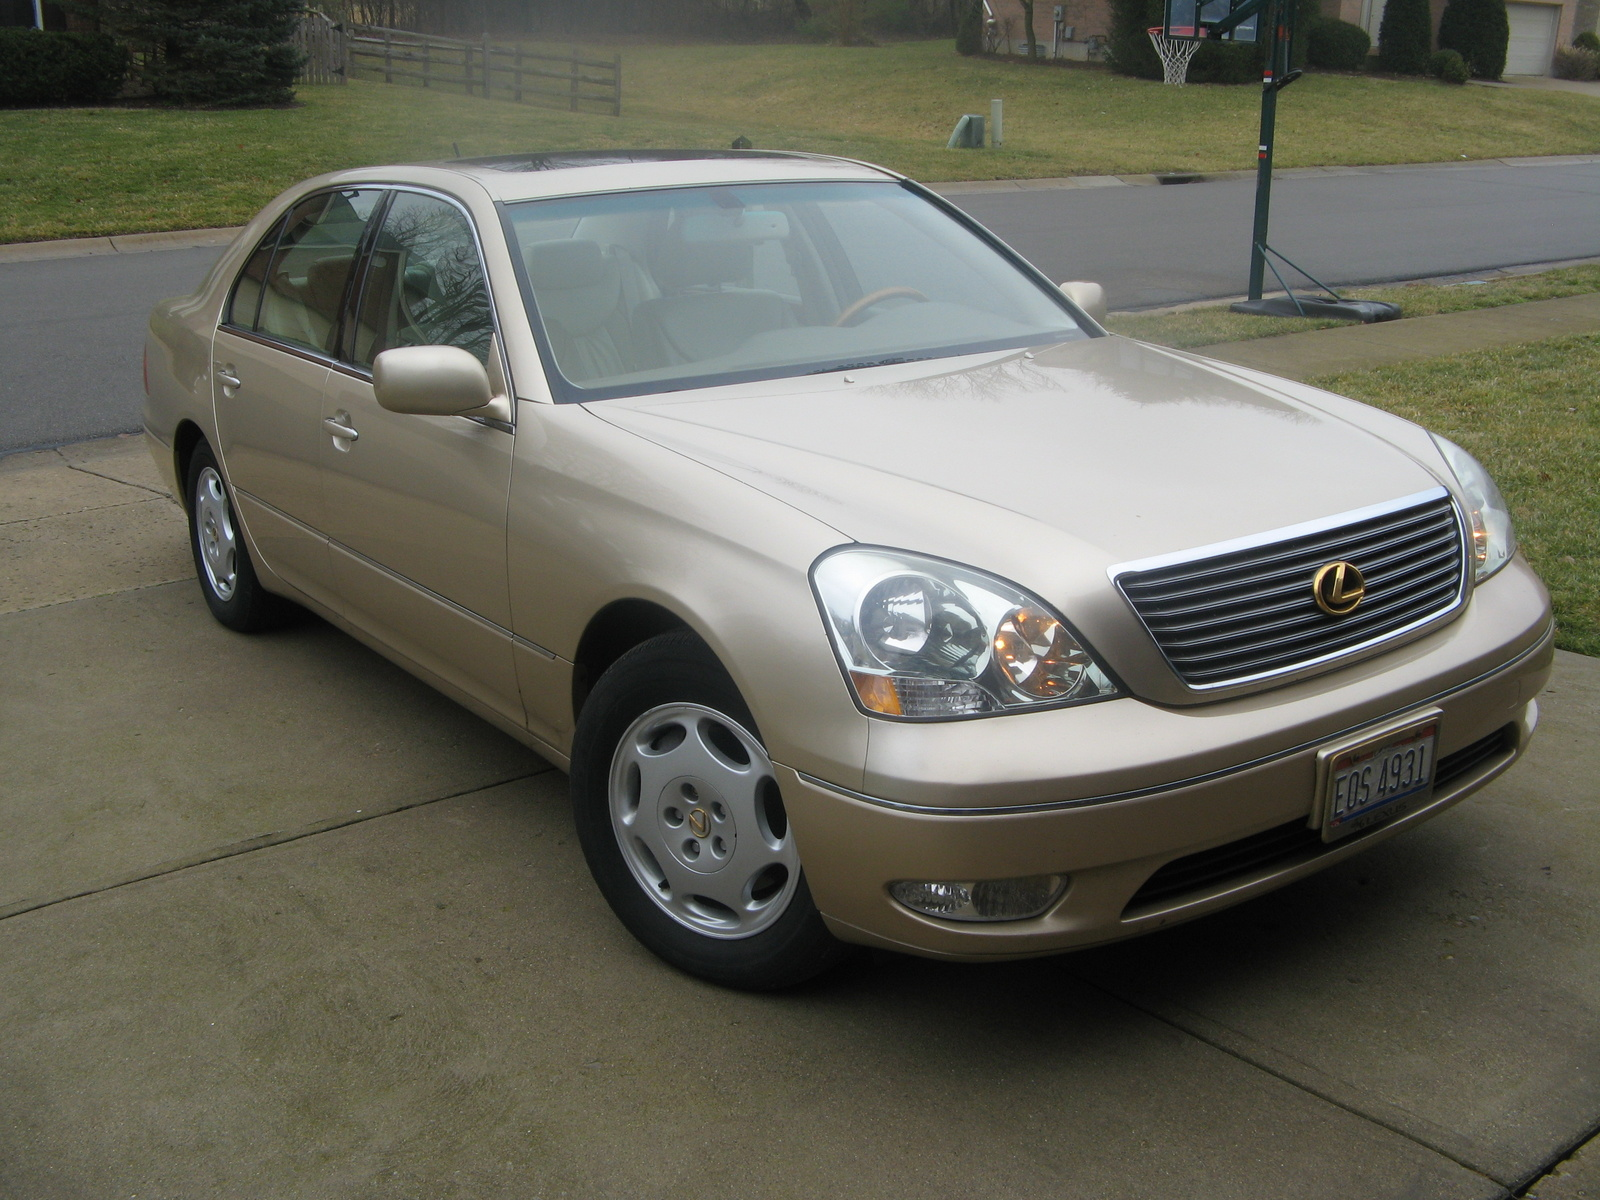 Picture of 2001 Lexus LS 430 STD